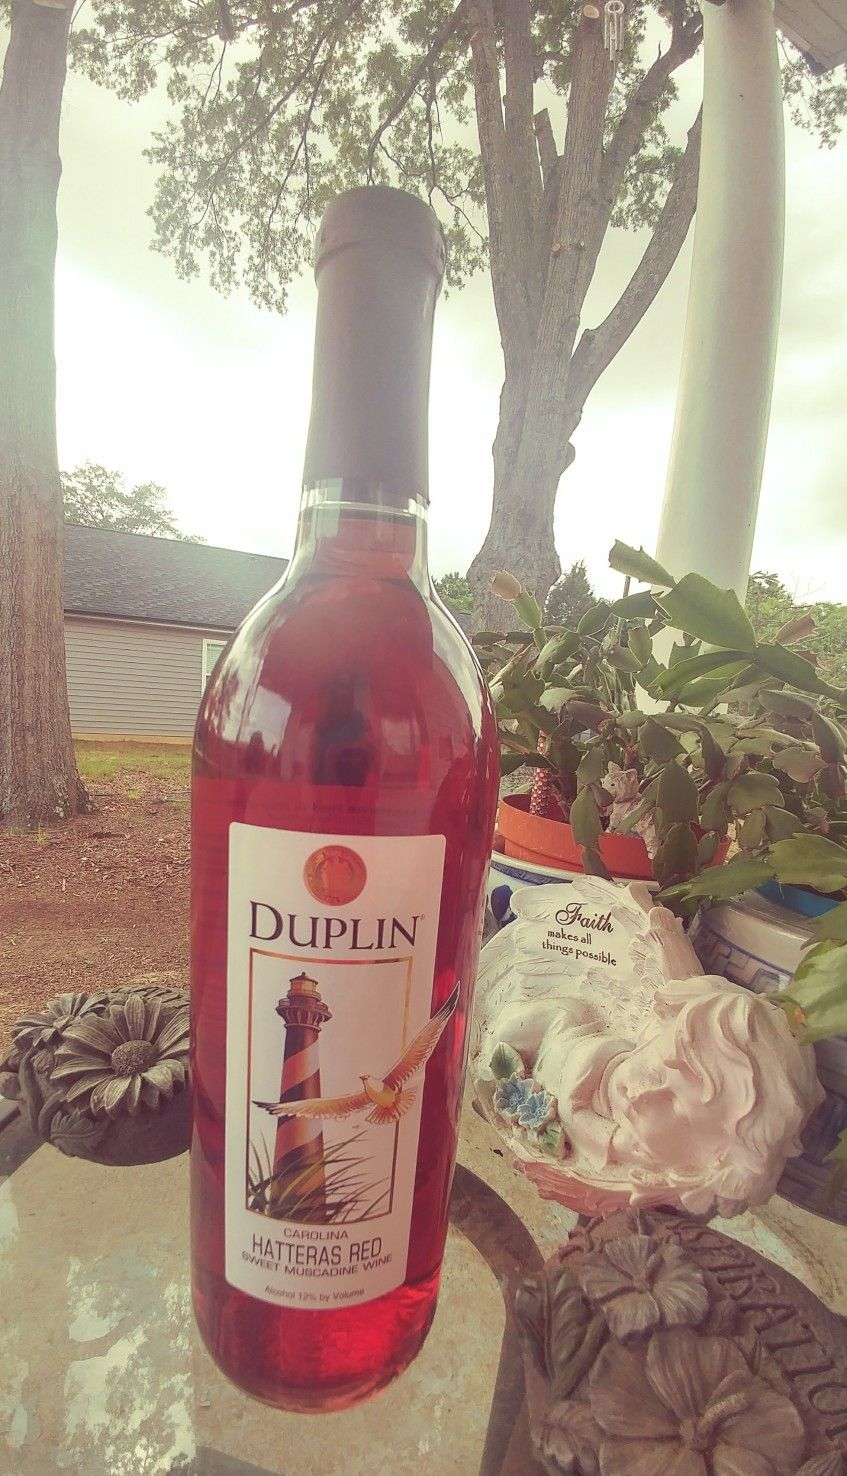 Oh What A Nice Surprise A Friend Gifted Me A Bottle Of One Of My Favorite Wines Duplin S Hatteras Red Sweet Muscadine How Favorite Wine Wine Bottle Wines